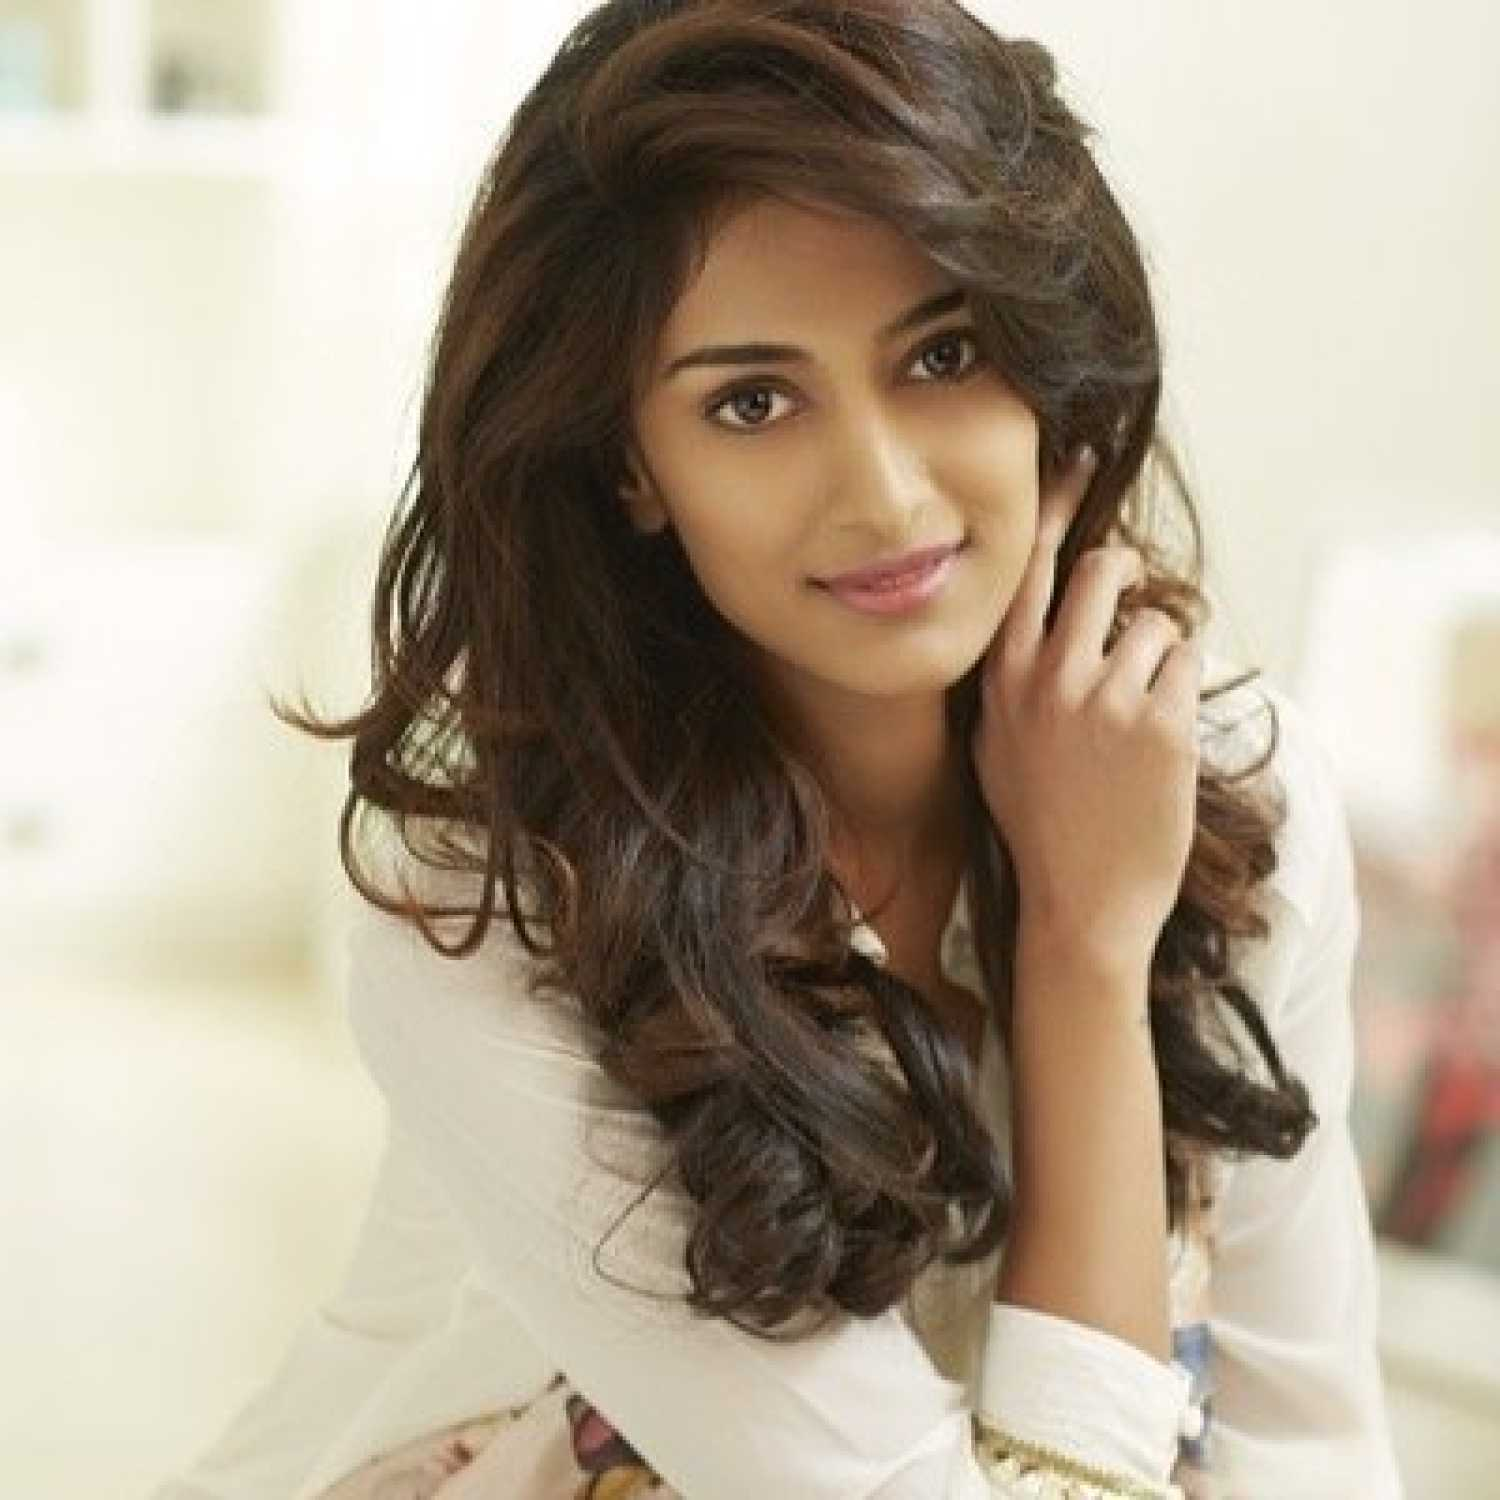 Erica Fernandes naked (82 photo), Pussy, Cleavage, Boobs, swimsuit 2017